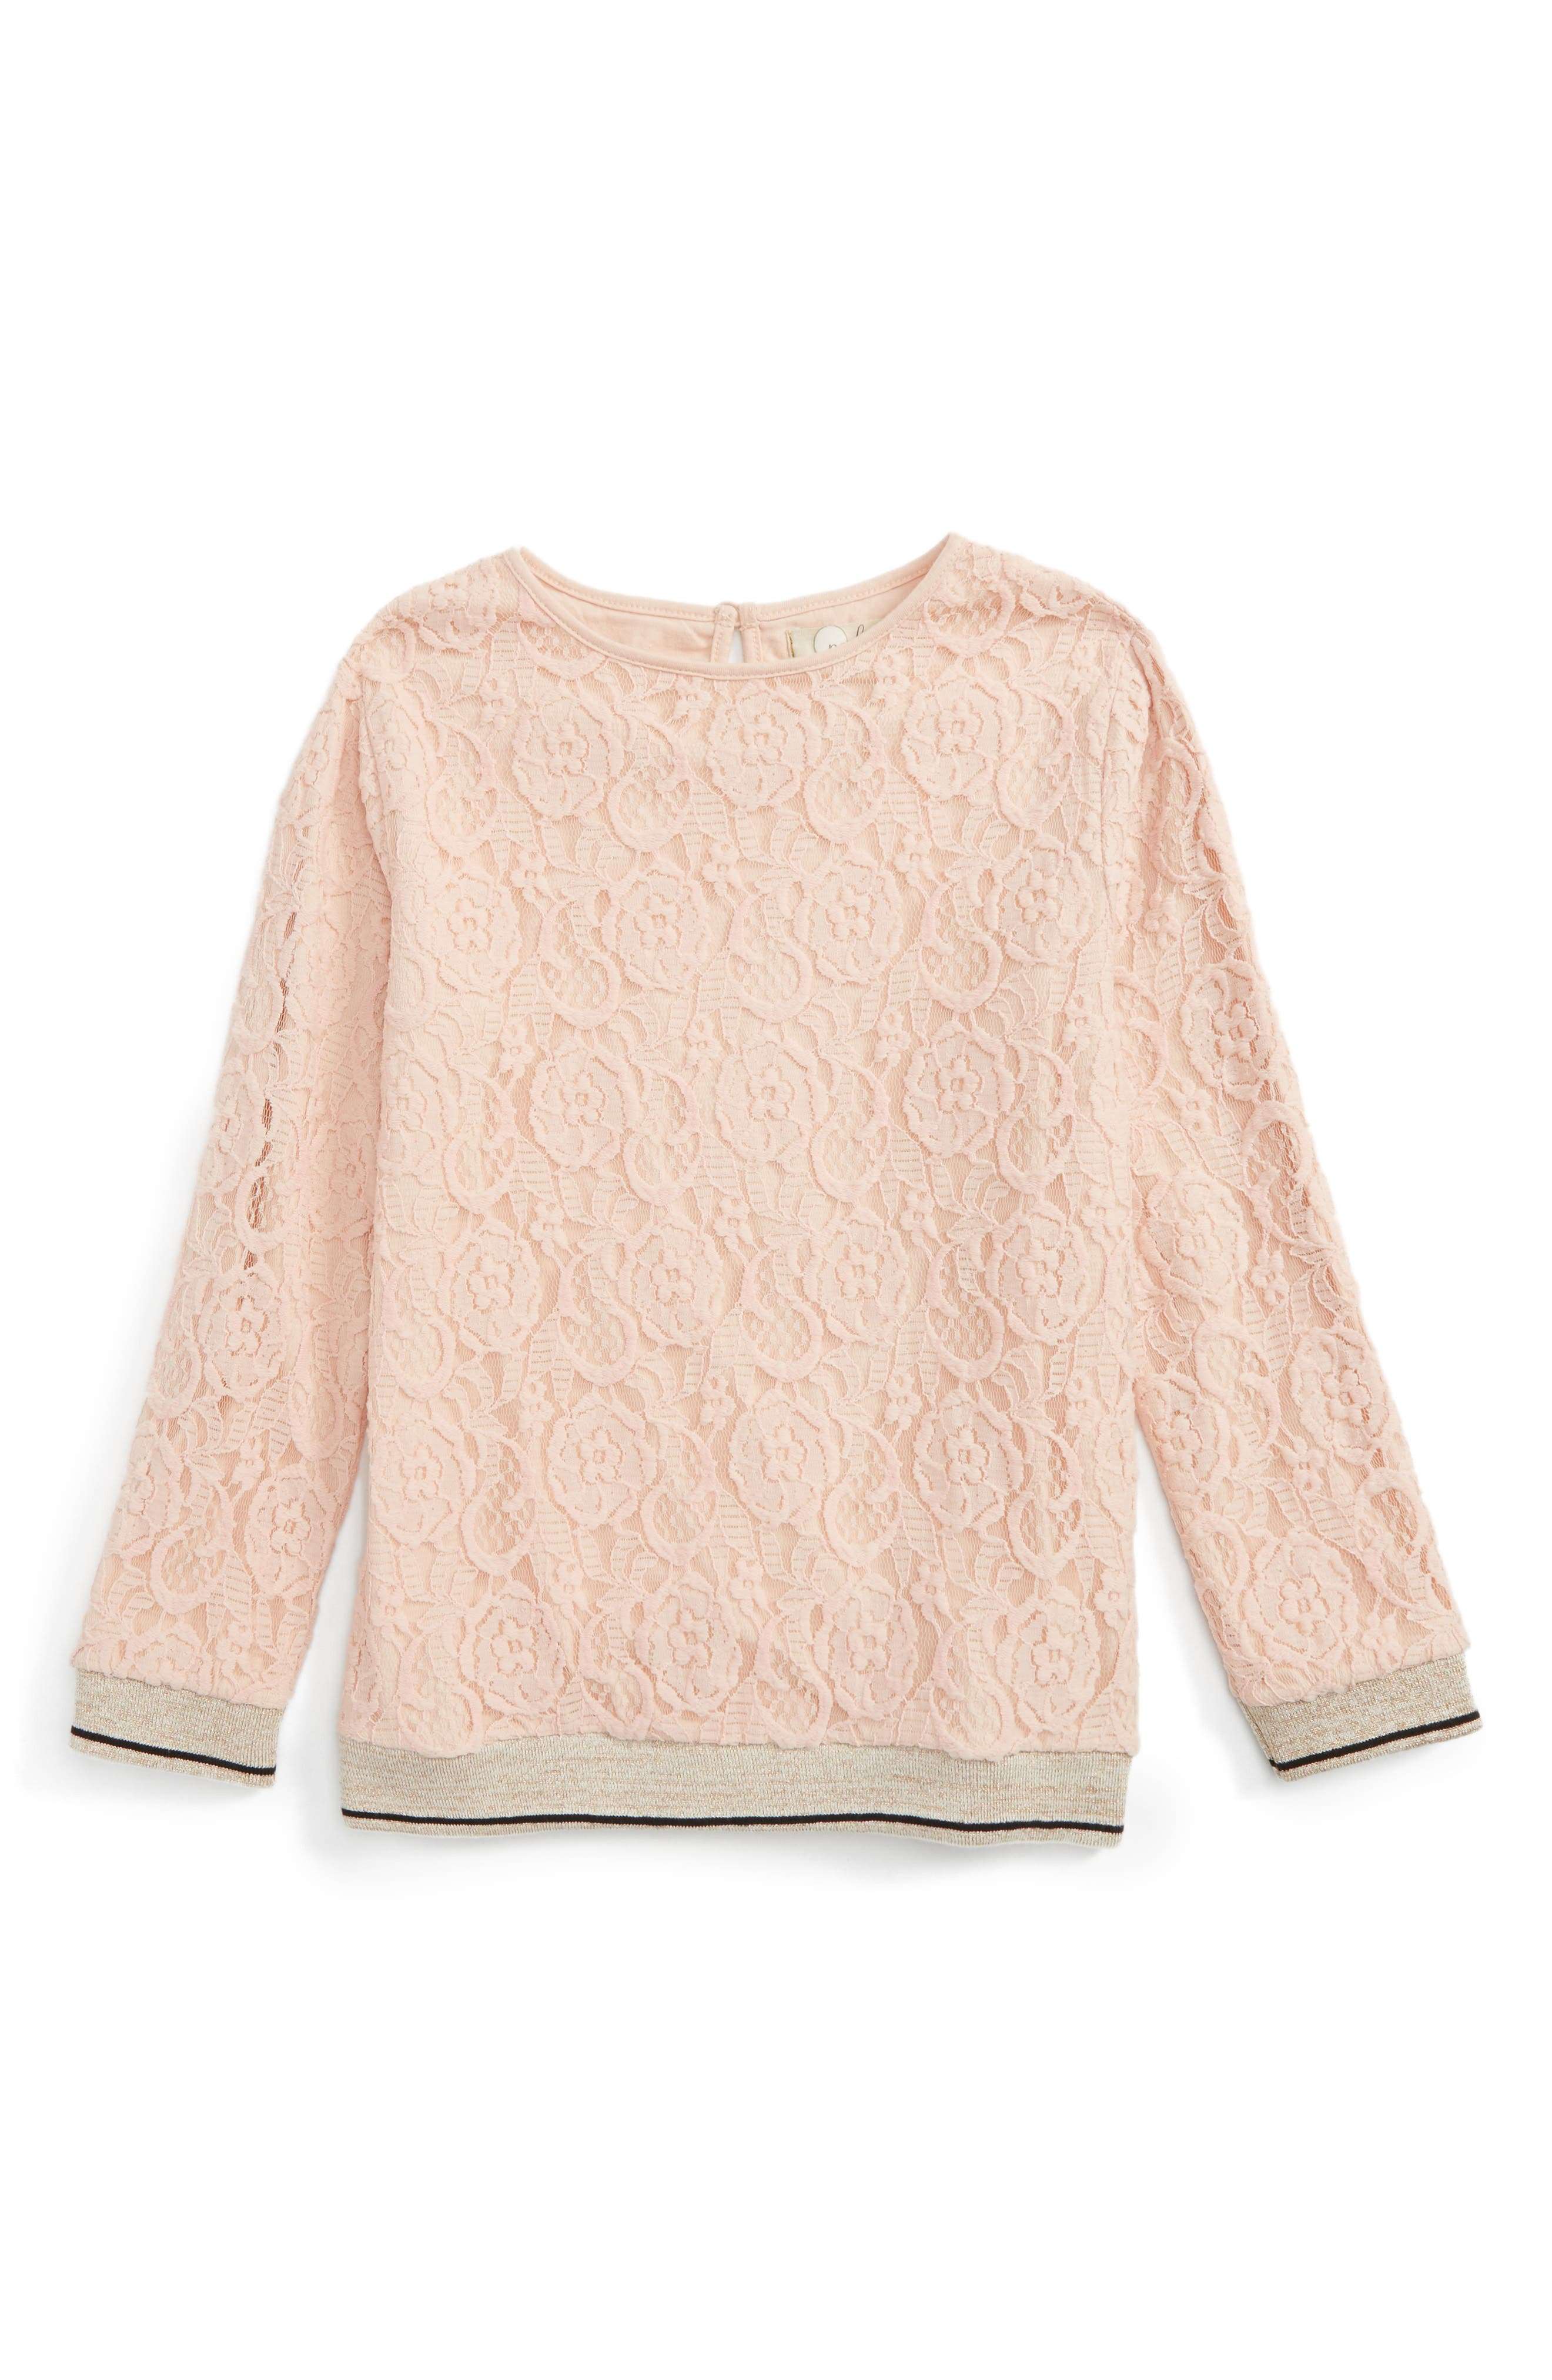 Main Image - Peek Grace Lace Overlay Top (Toddler Girls, Little Girls & Big Girls)